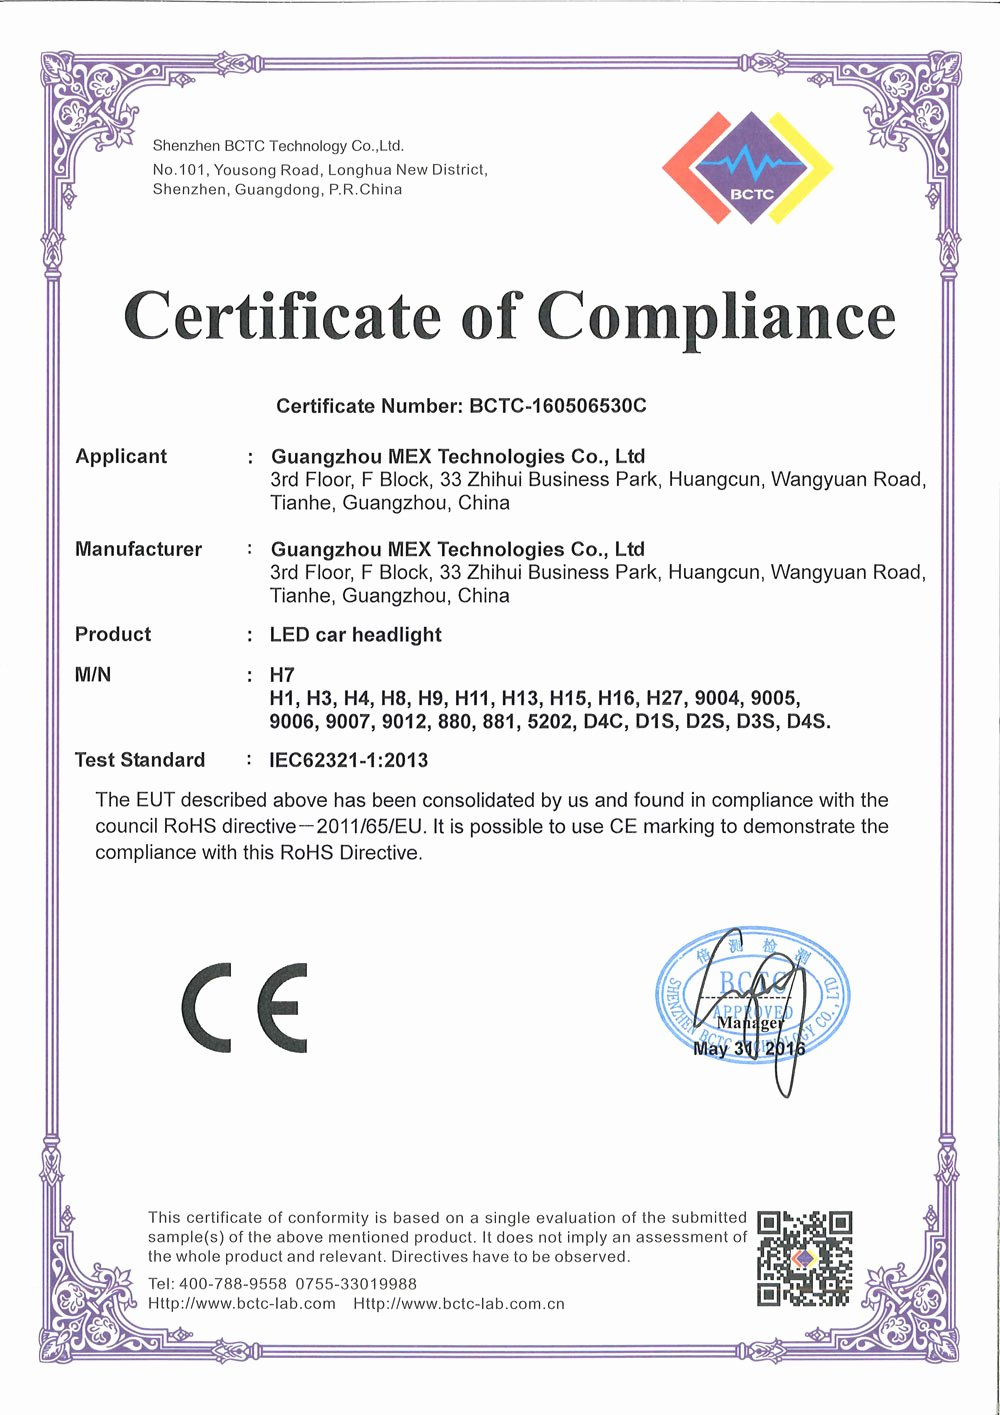 Rohs Compliant Certificate Template Luxury Rohs Certificate Of Pliance Guangzhou Mex